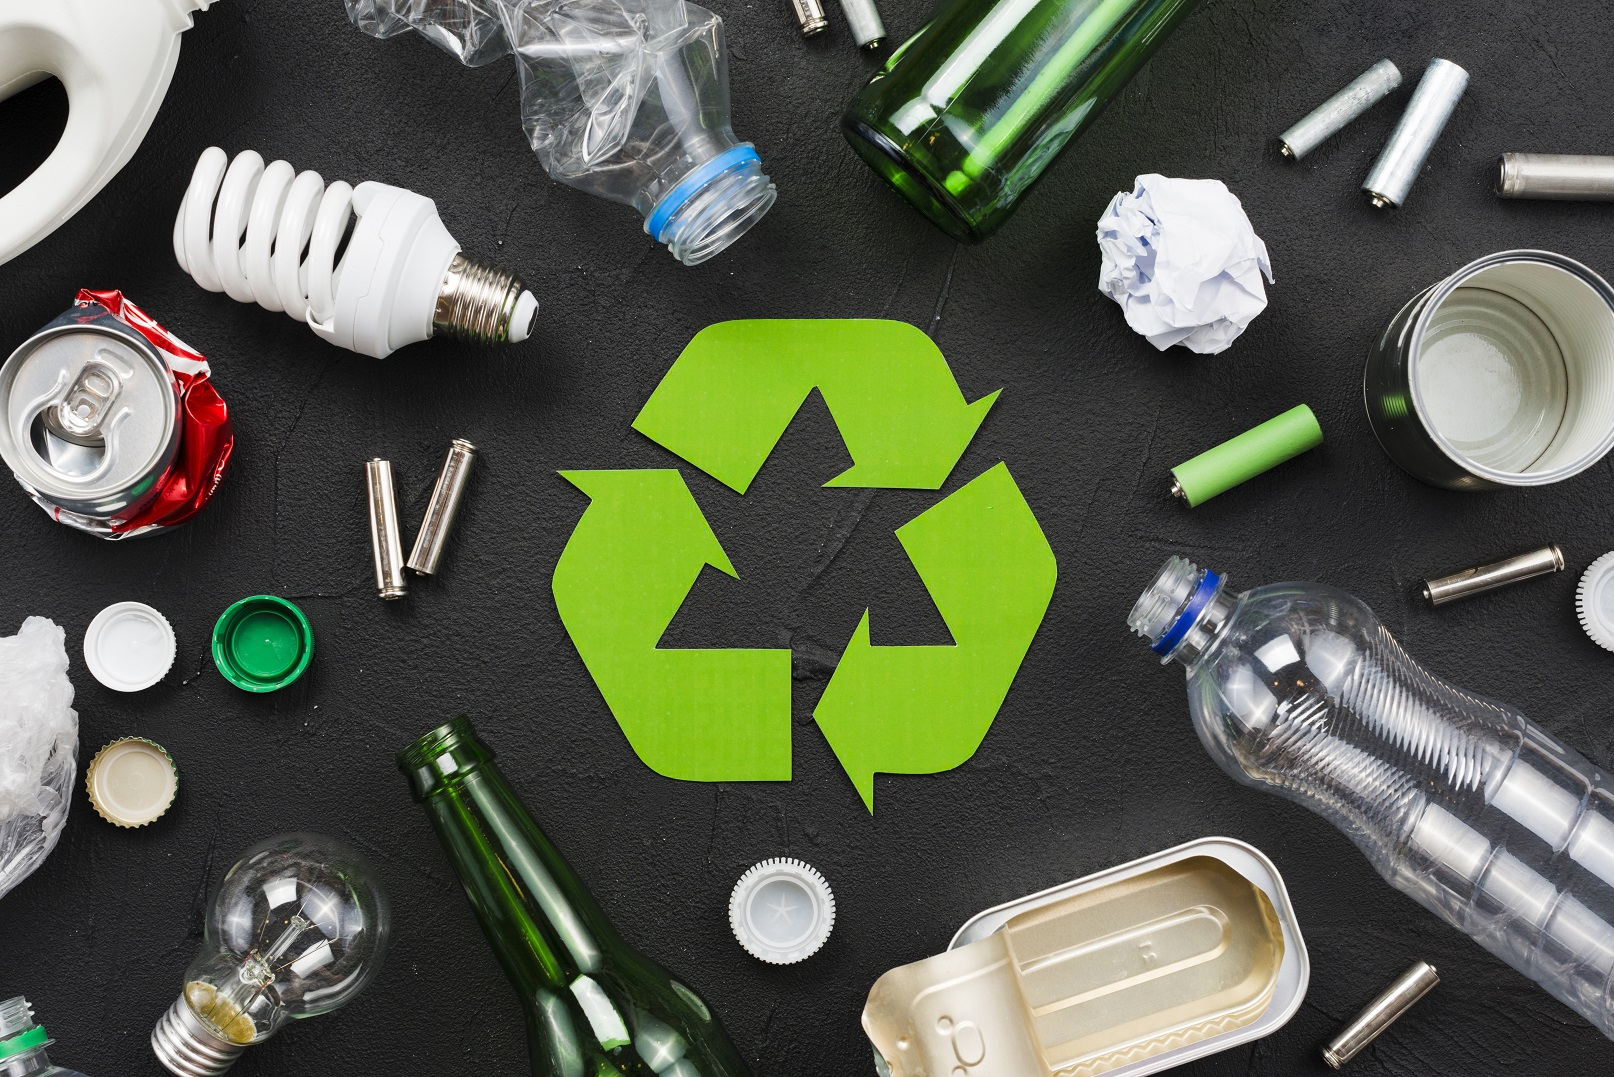 How to Recycle in Prince William County